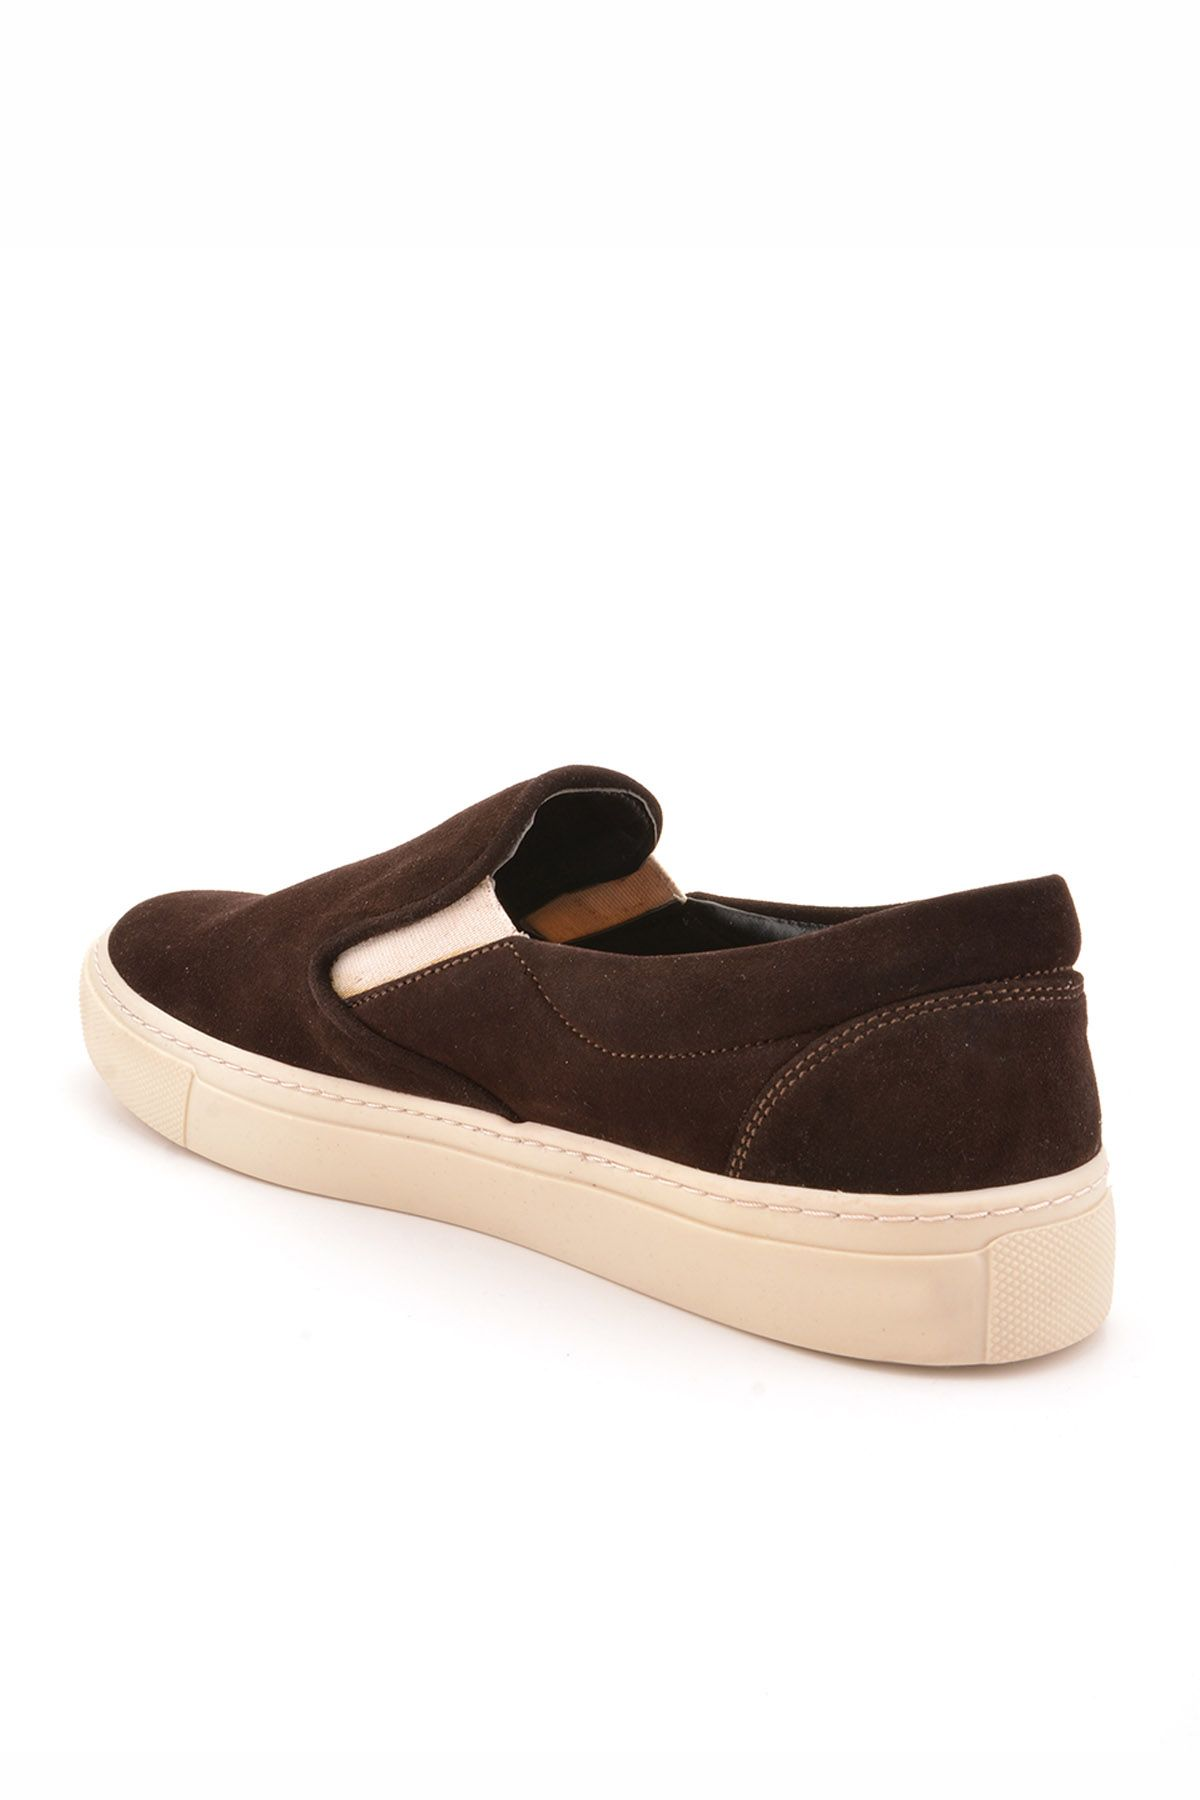 Art Goya Women Sneakers From Genuine Leather And Nubuck Dark Brown